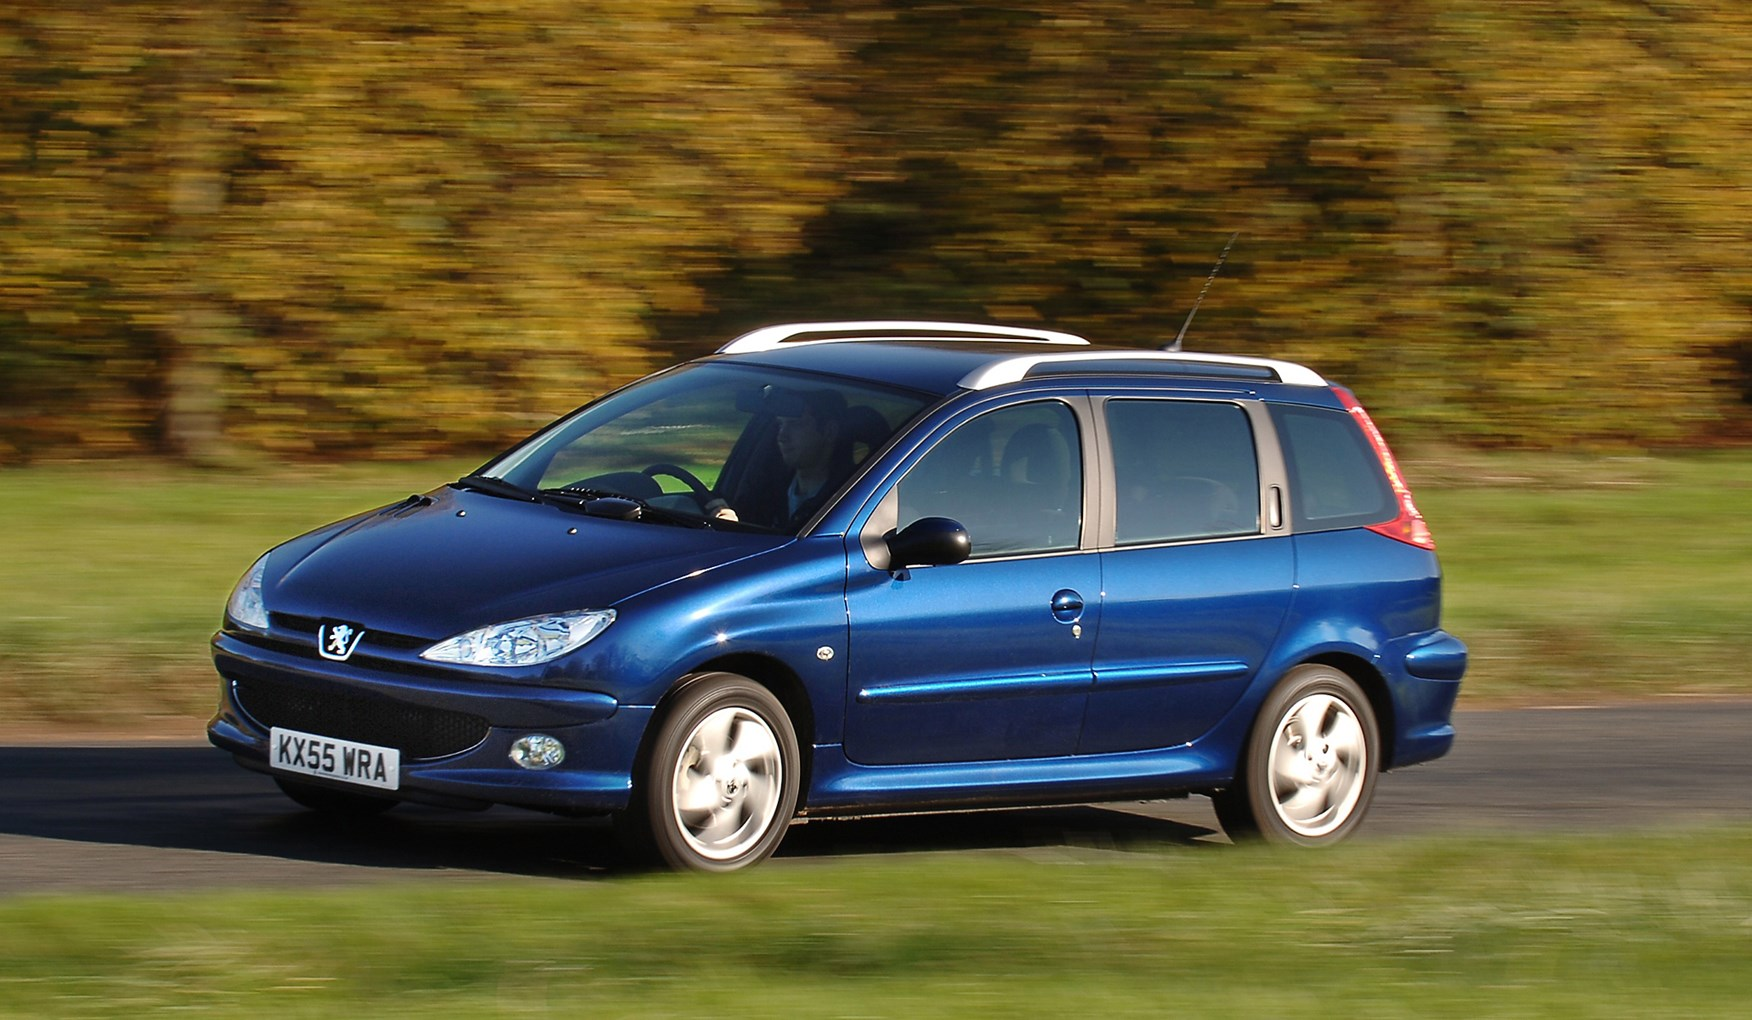 Used Peugeot 206 SW (2002 - 2006) Review